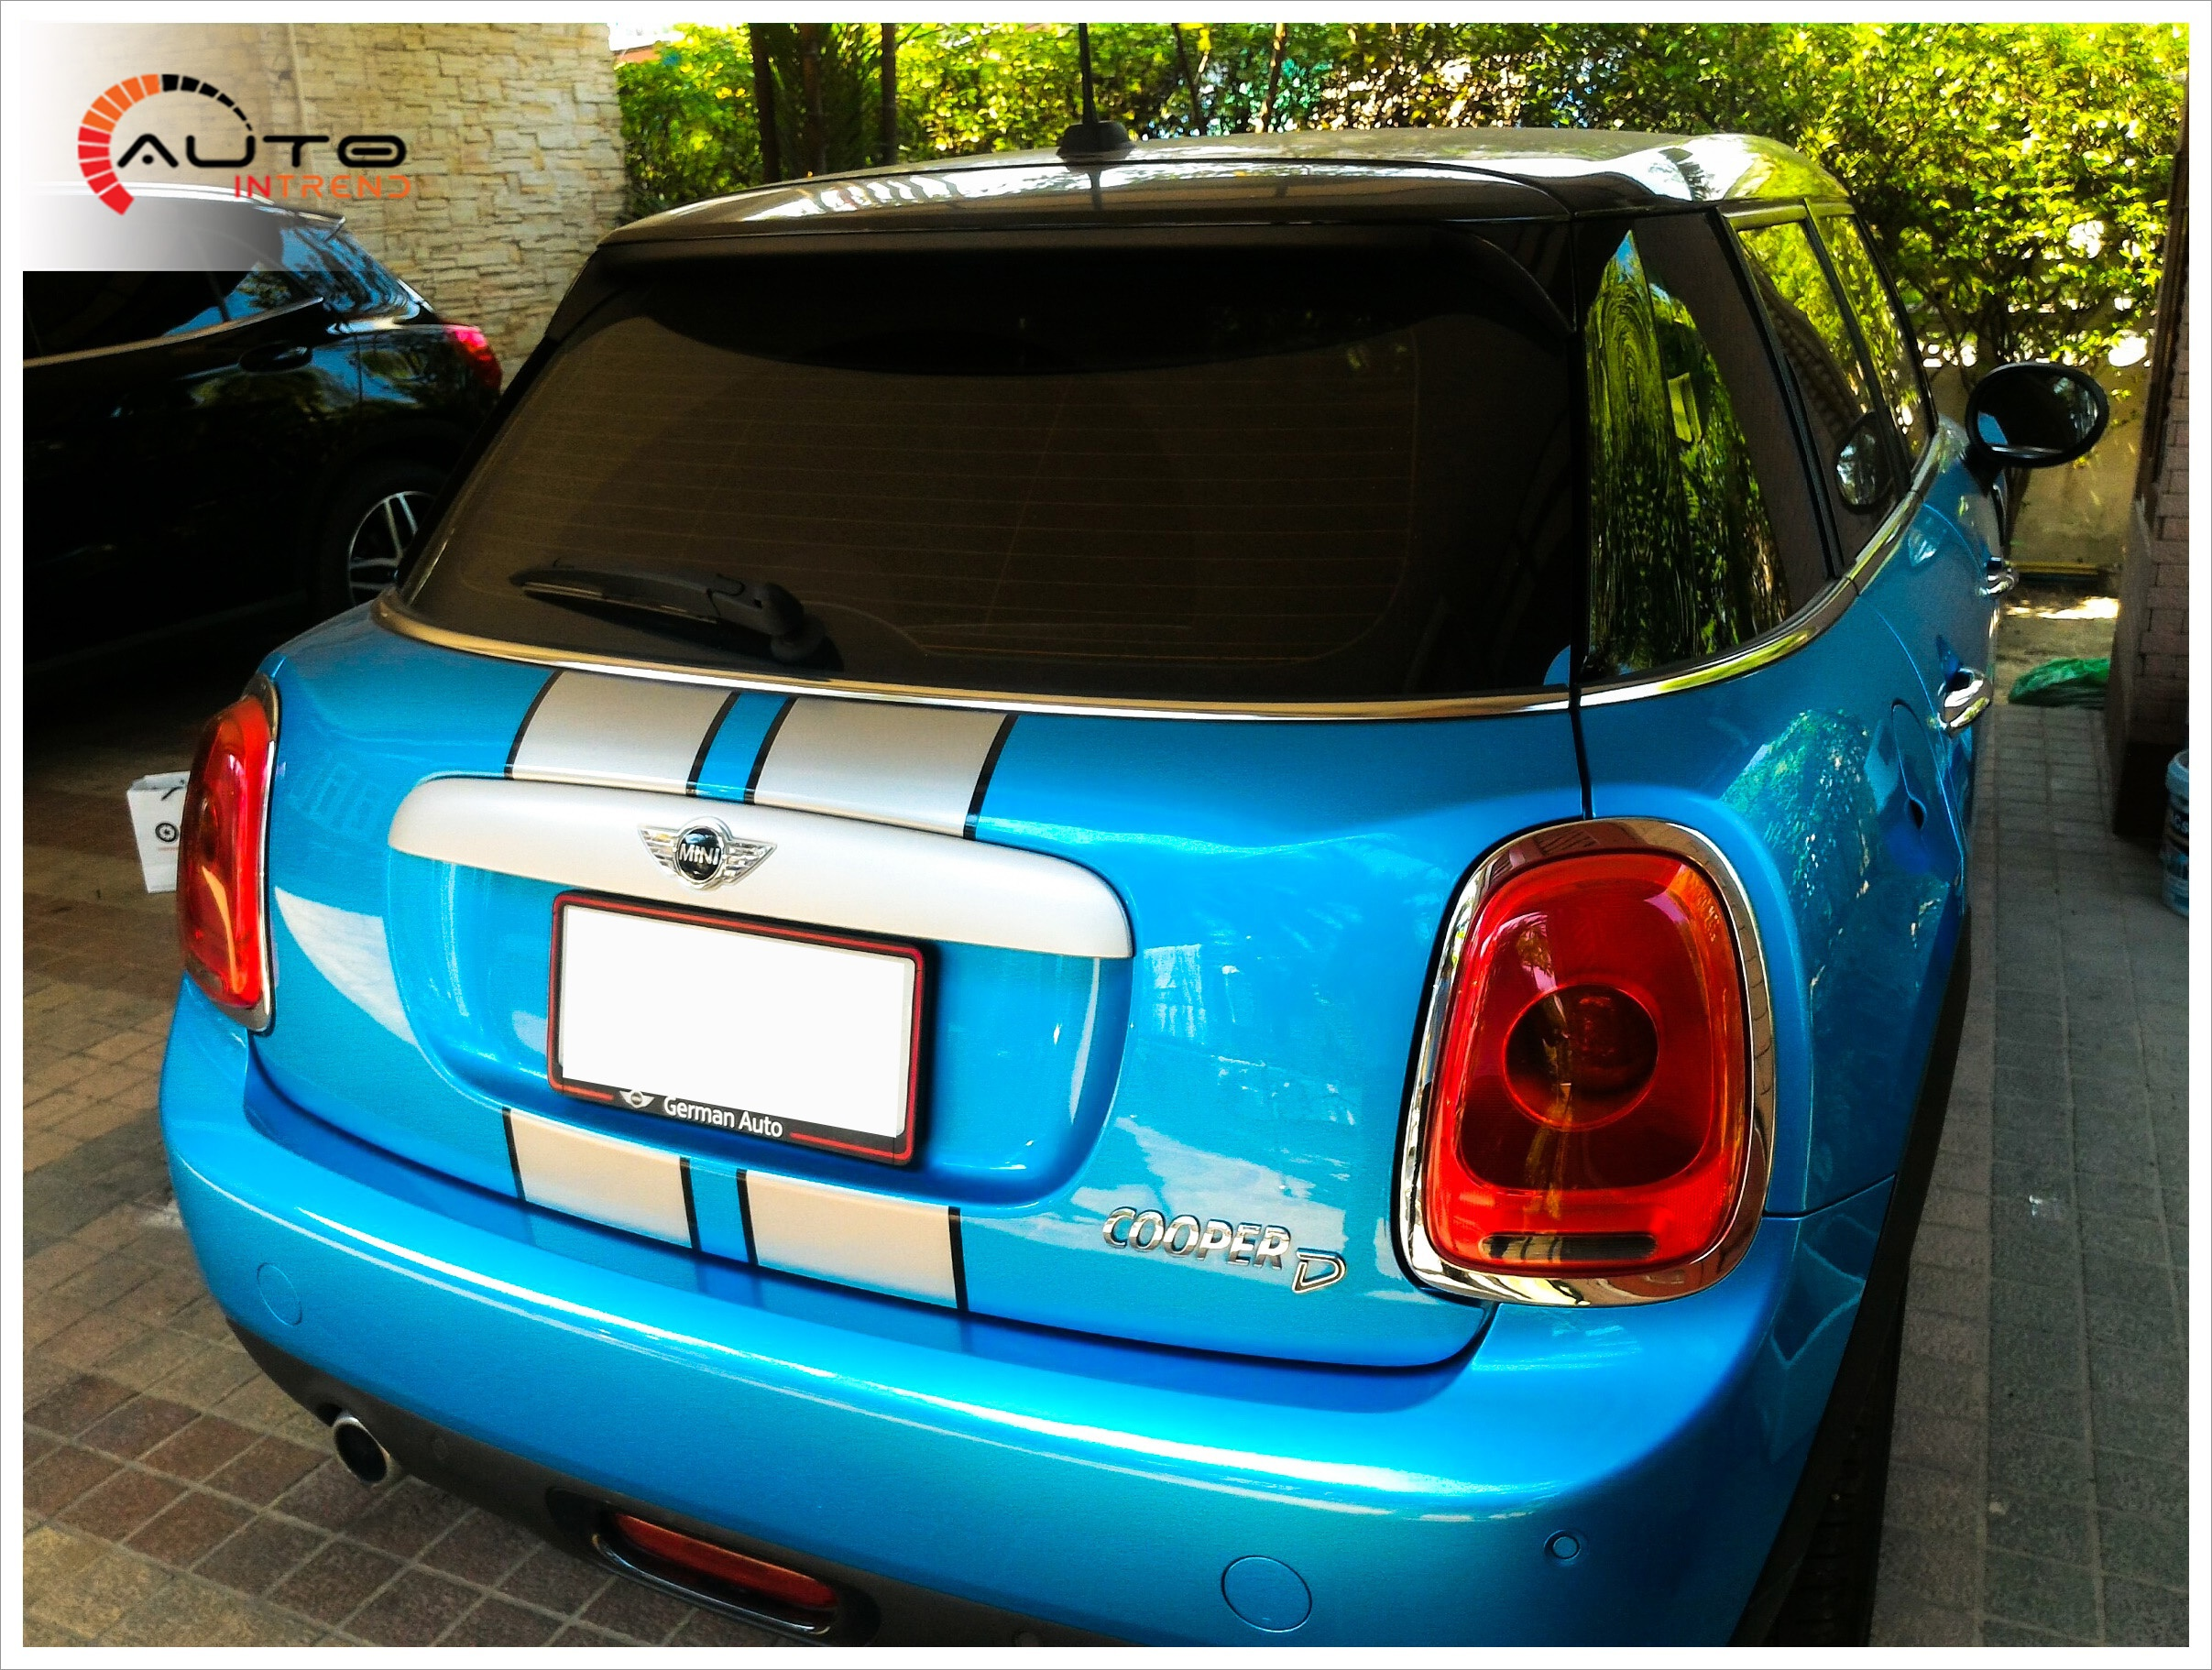 DVR Thinkware x550 Mini Cooper D